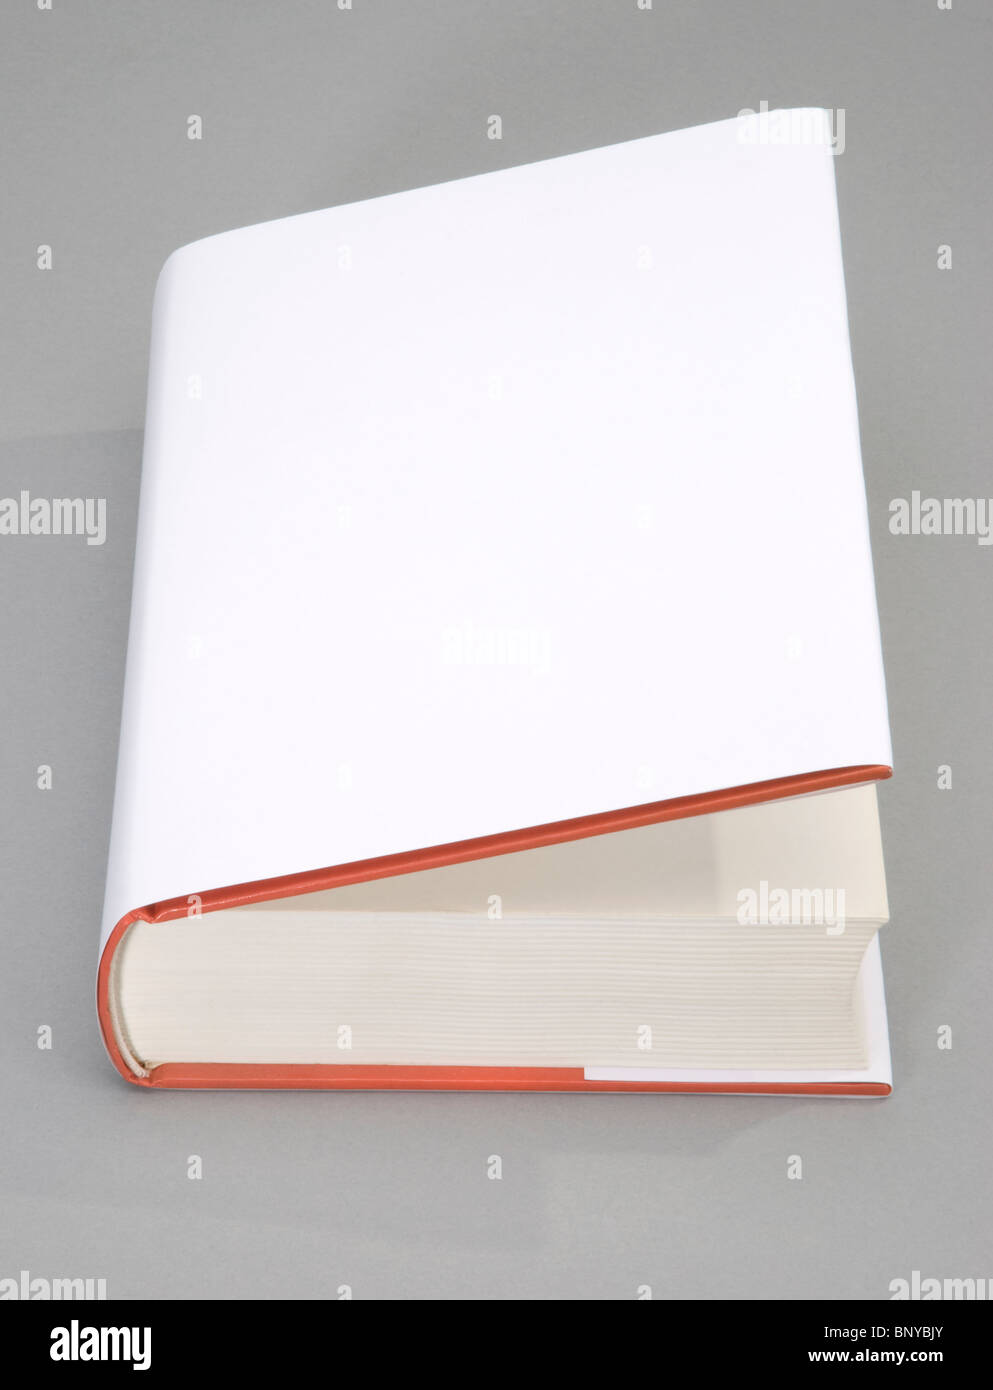 The opened Blank book with white cover - Stock Image